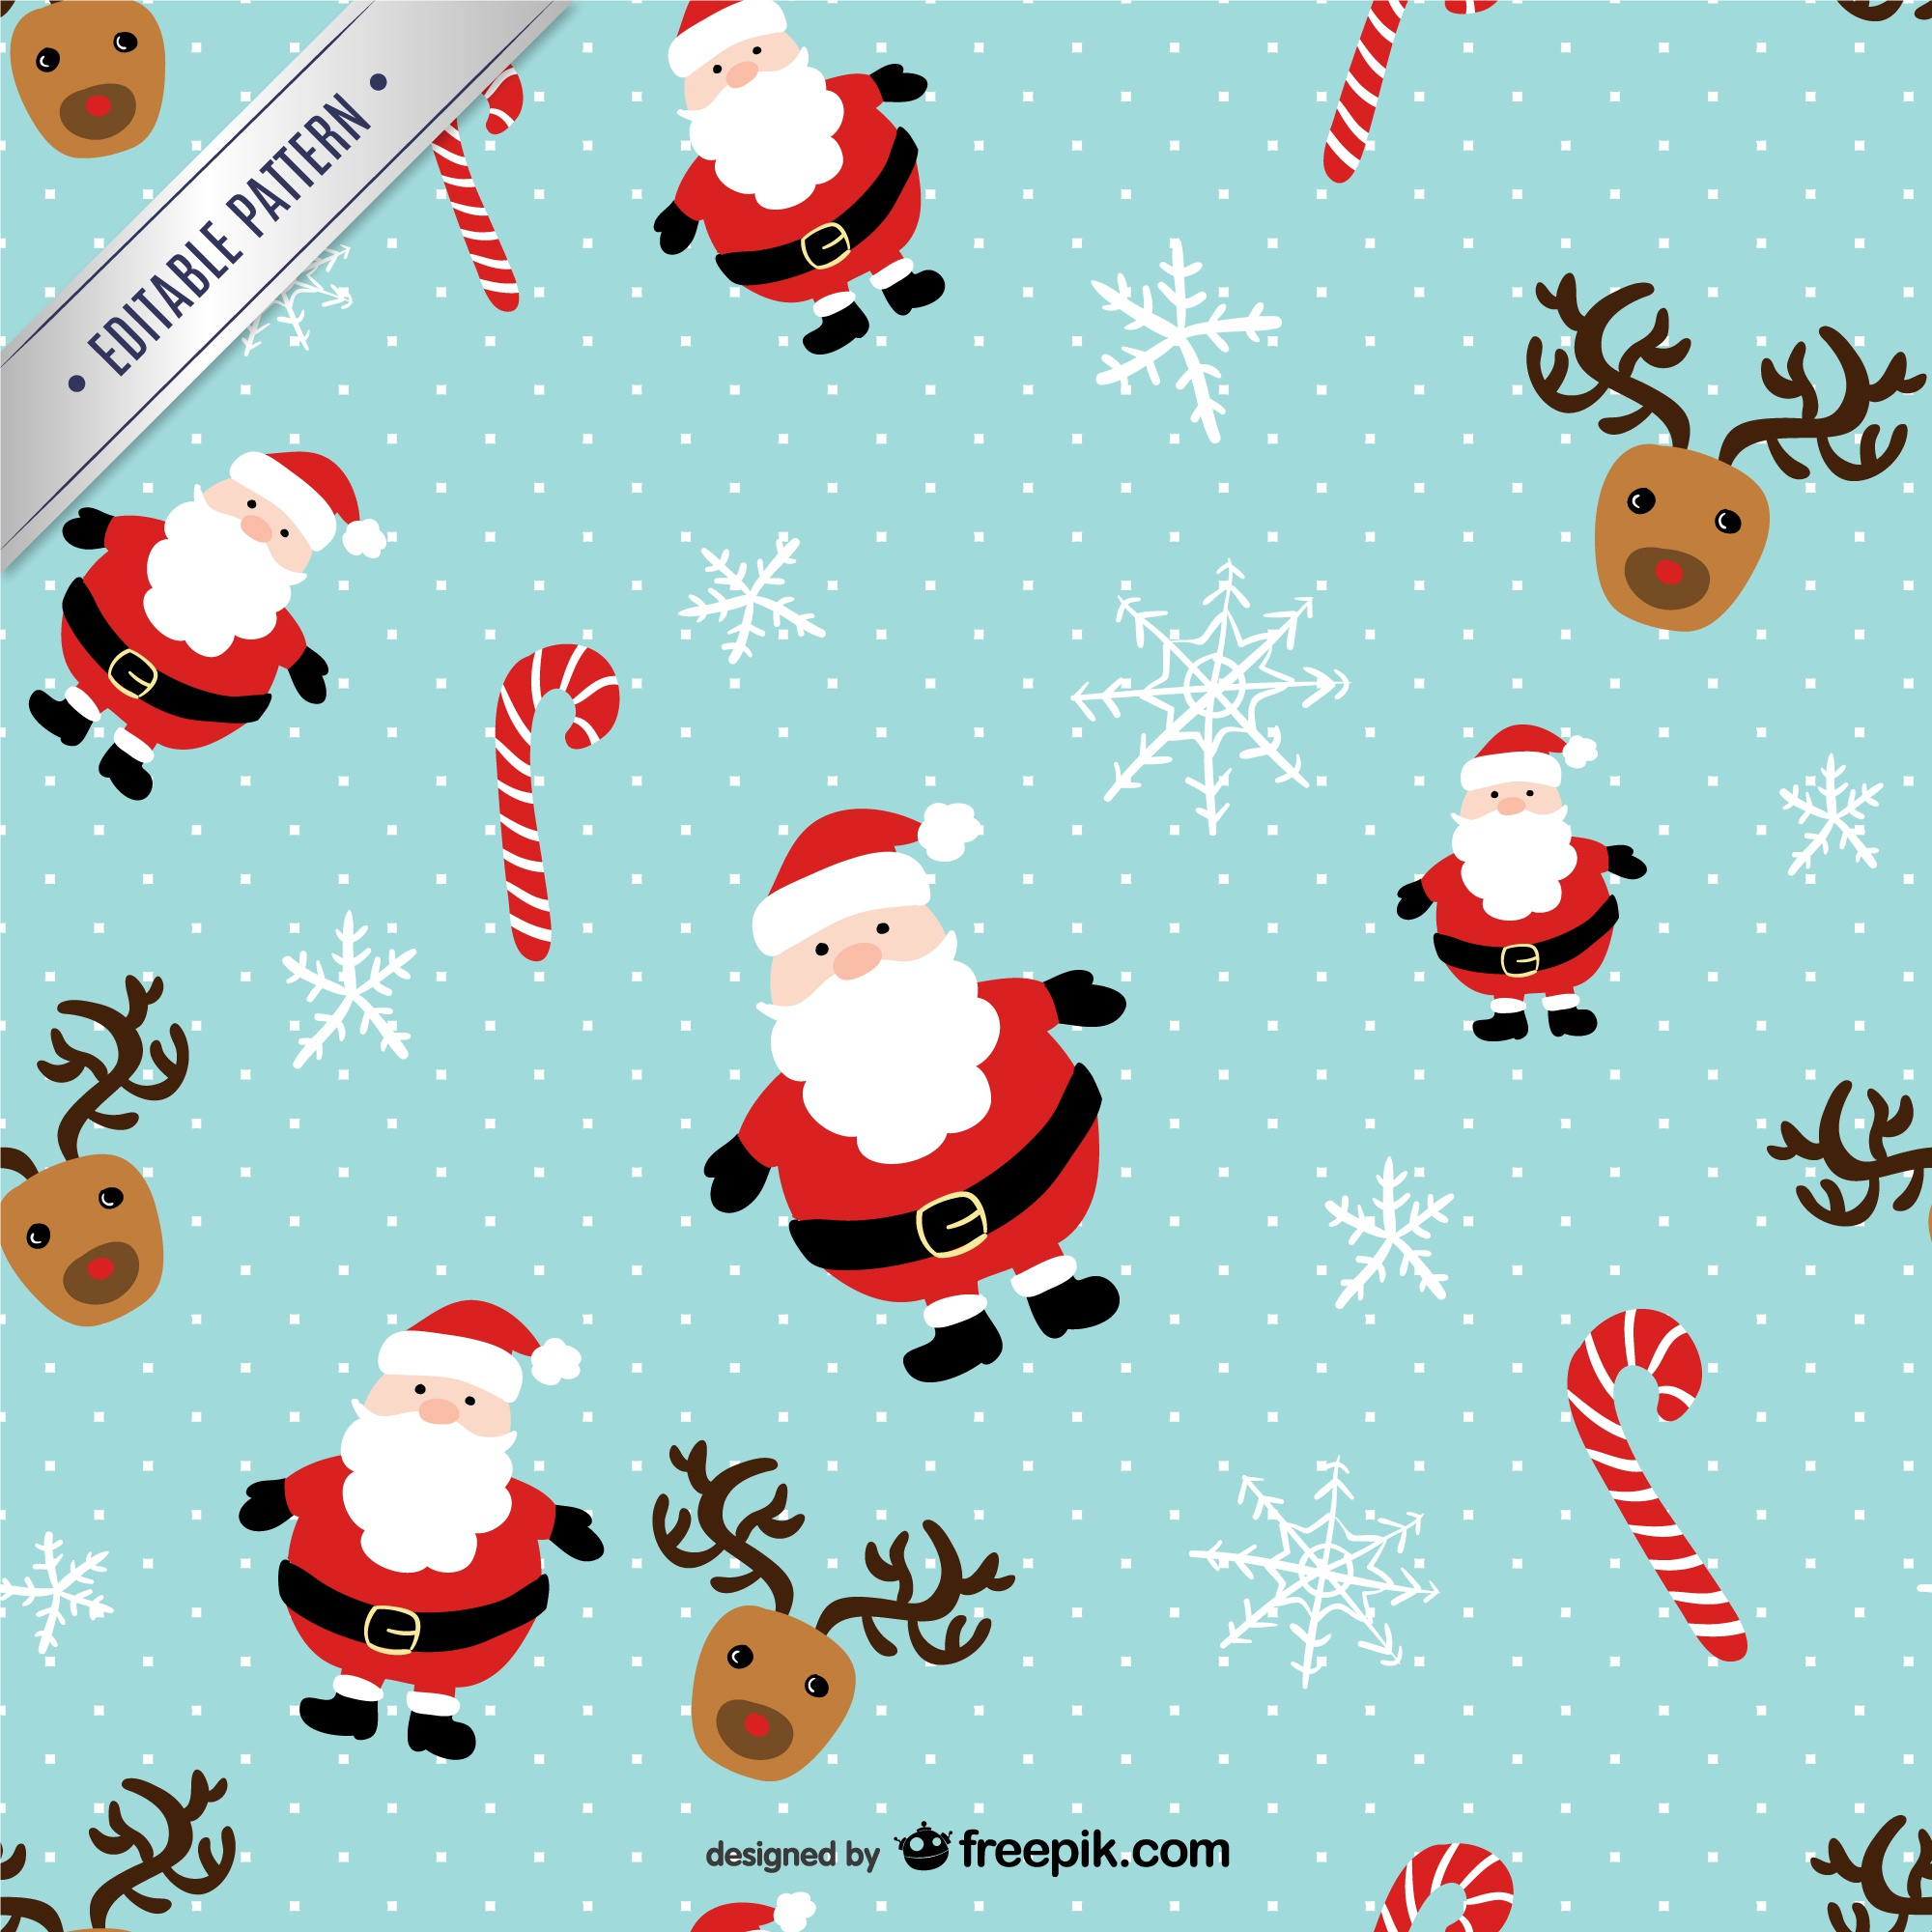 Christmas pattern with Santa Claus and reindeers